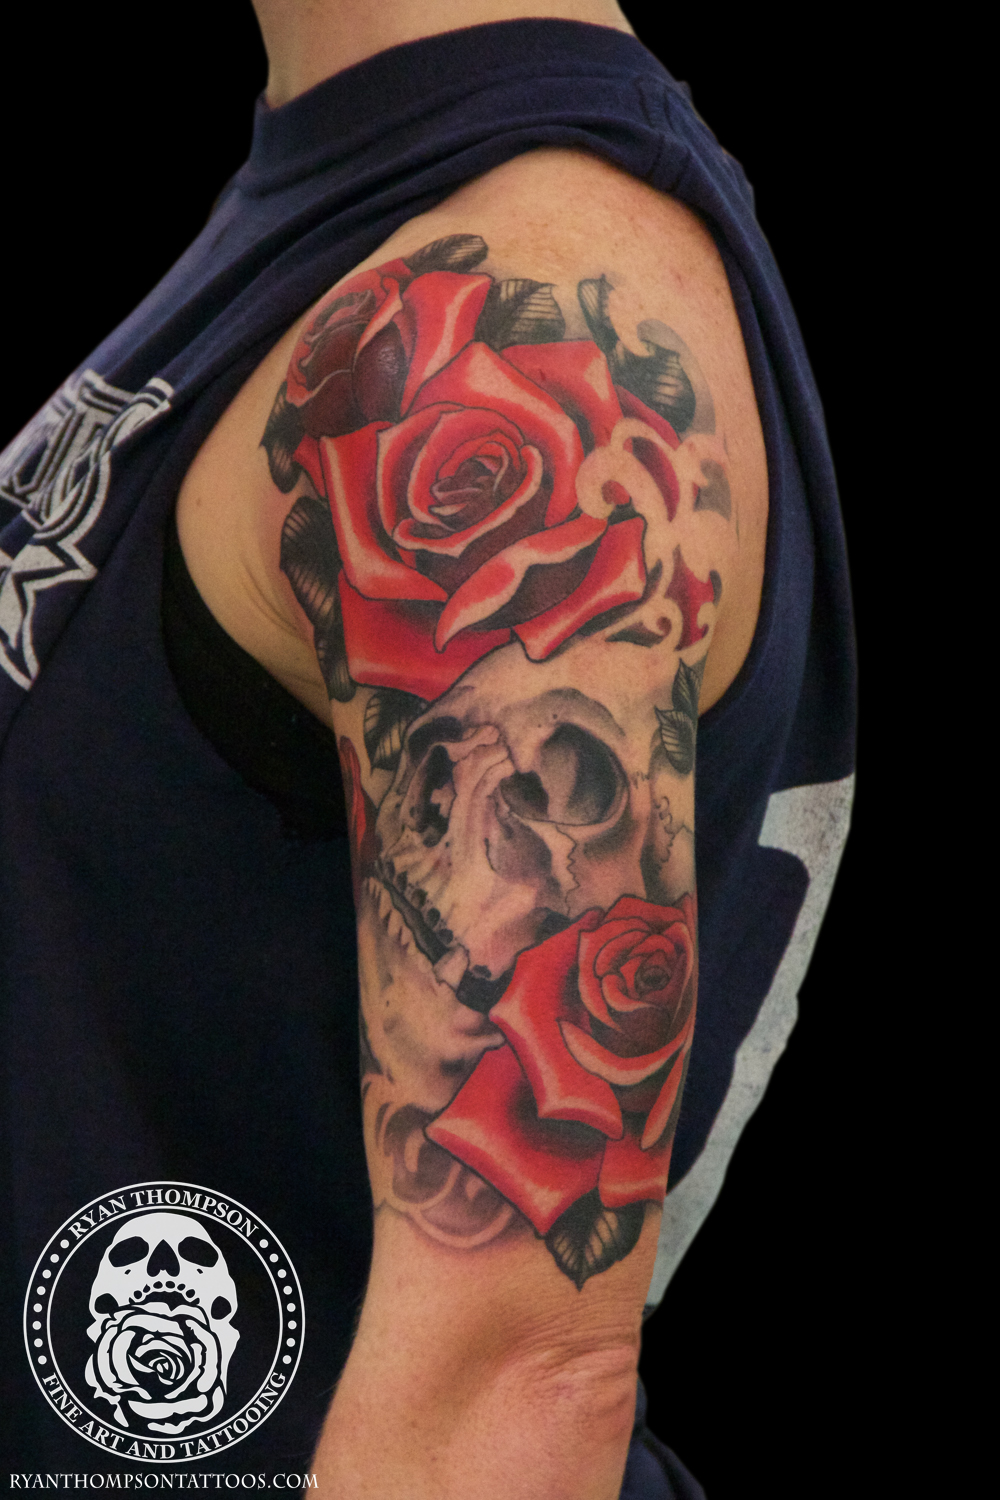 Courtney's Skull and Roses